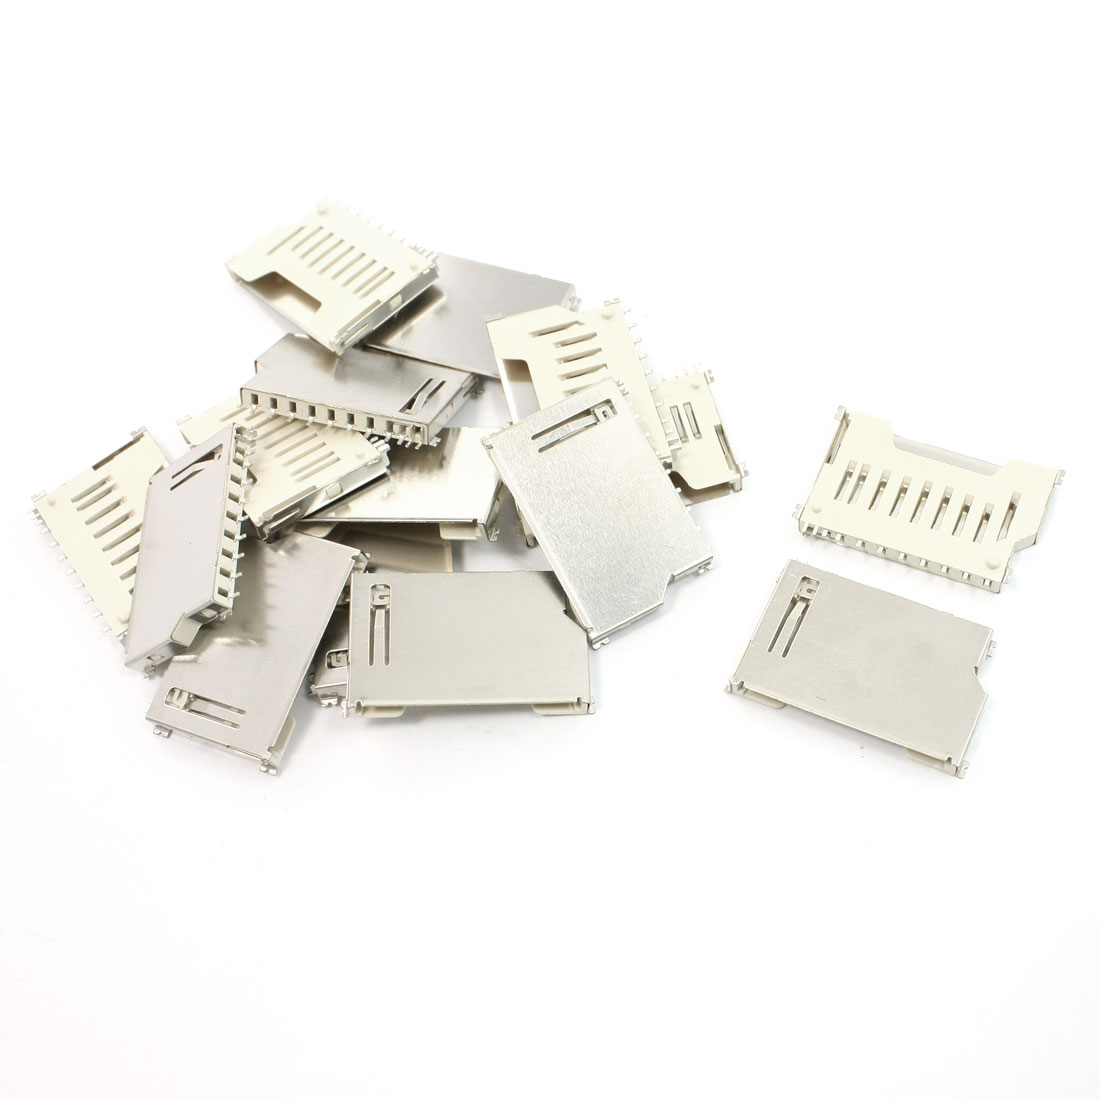 15 Pcs Pull Out Type SD Memory Card Sockets Connectors 16mm Length